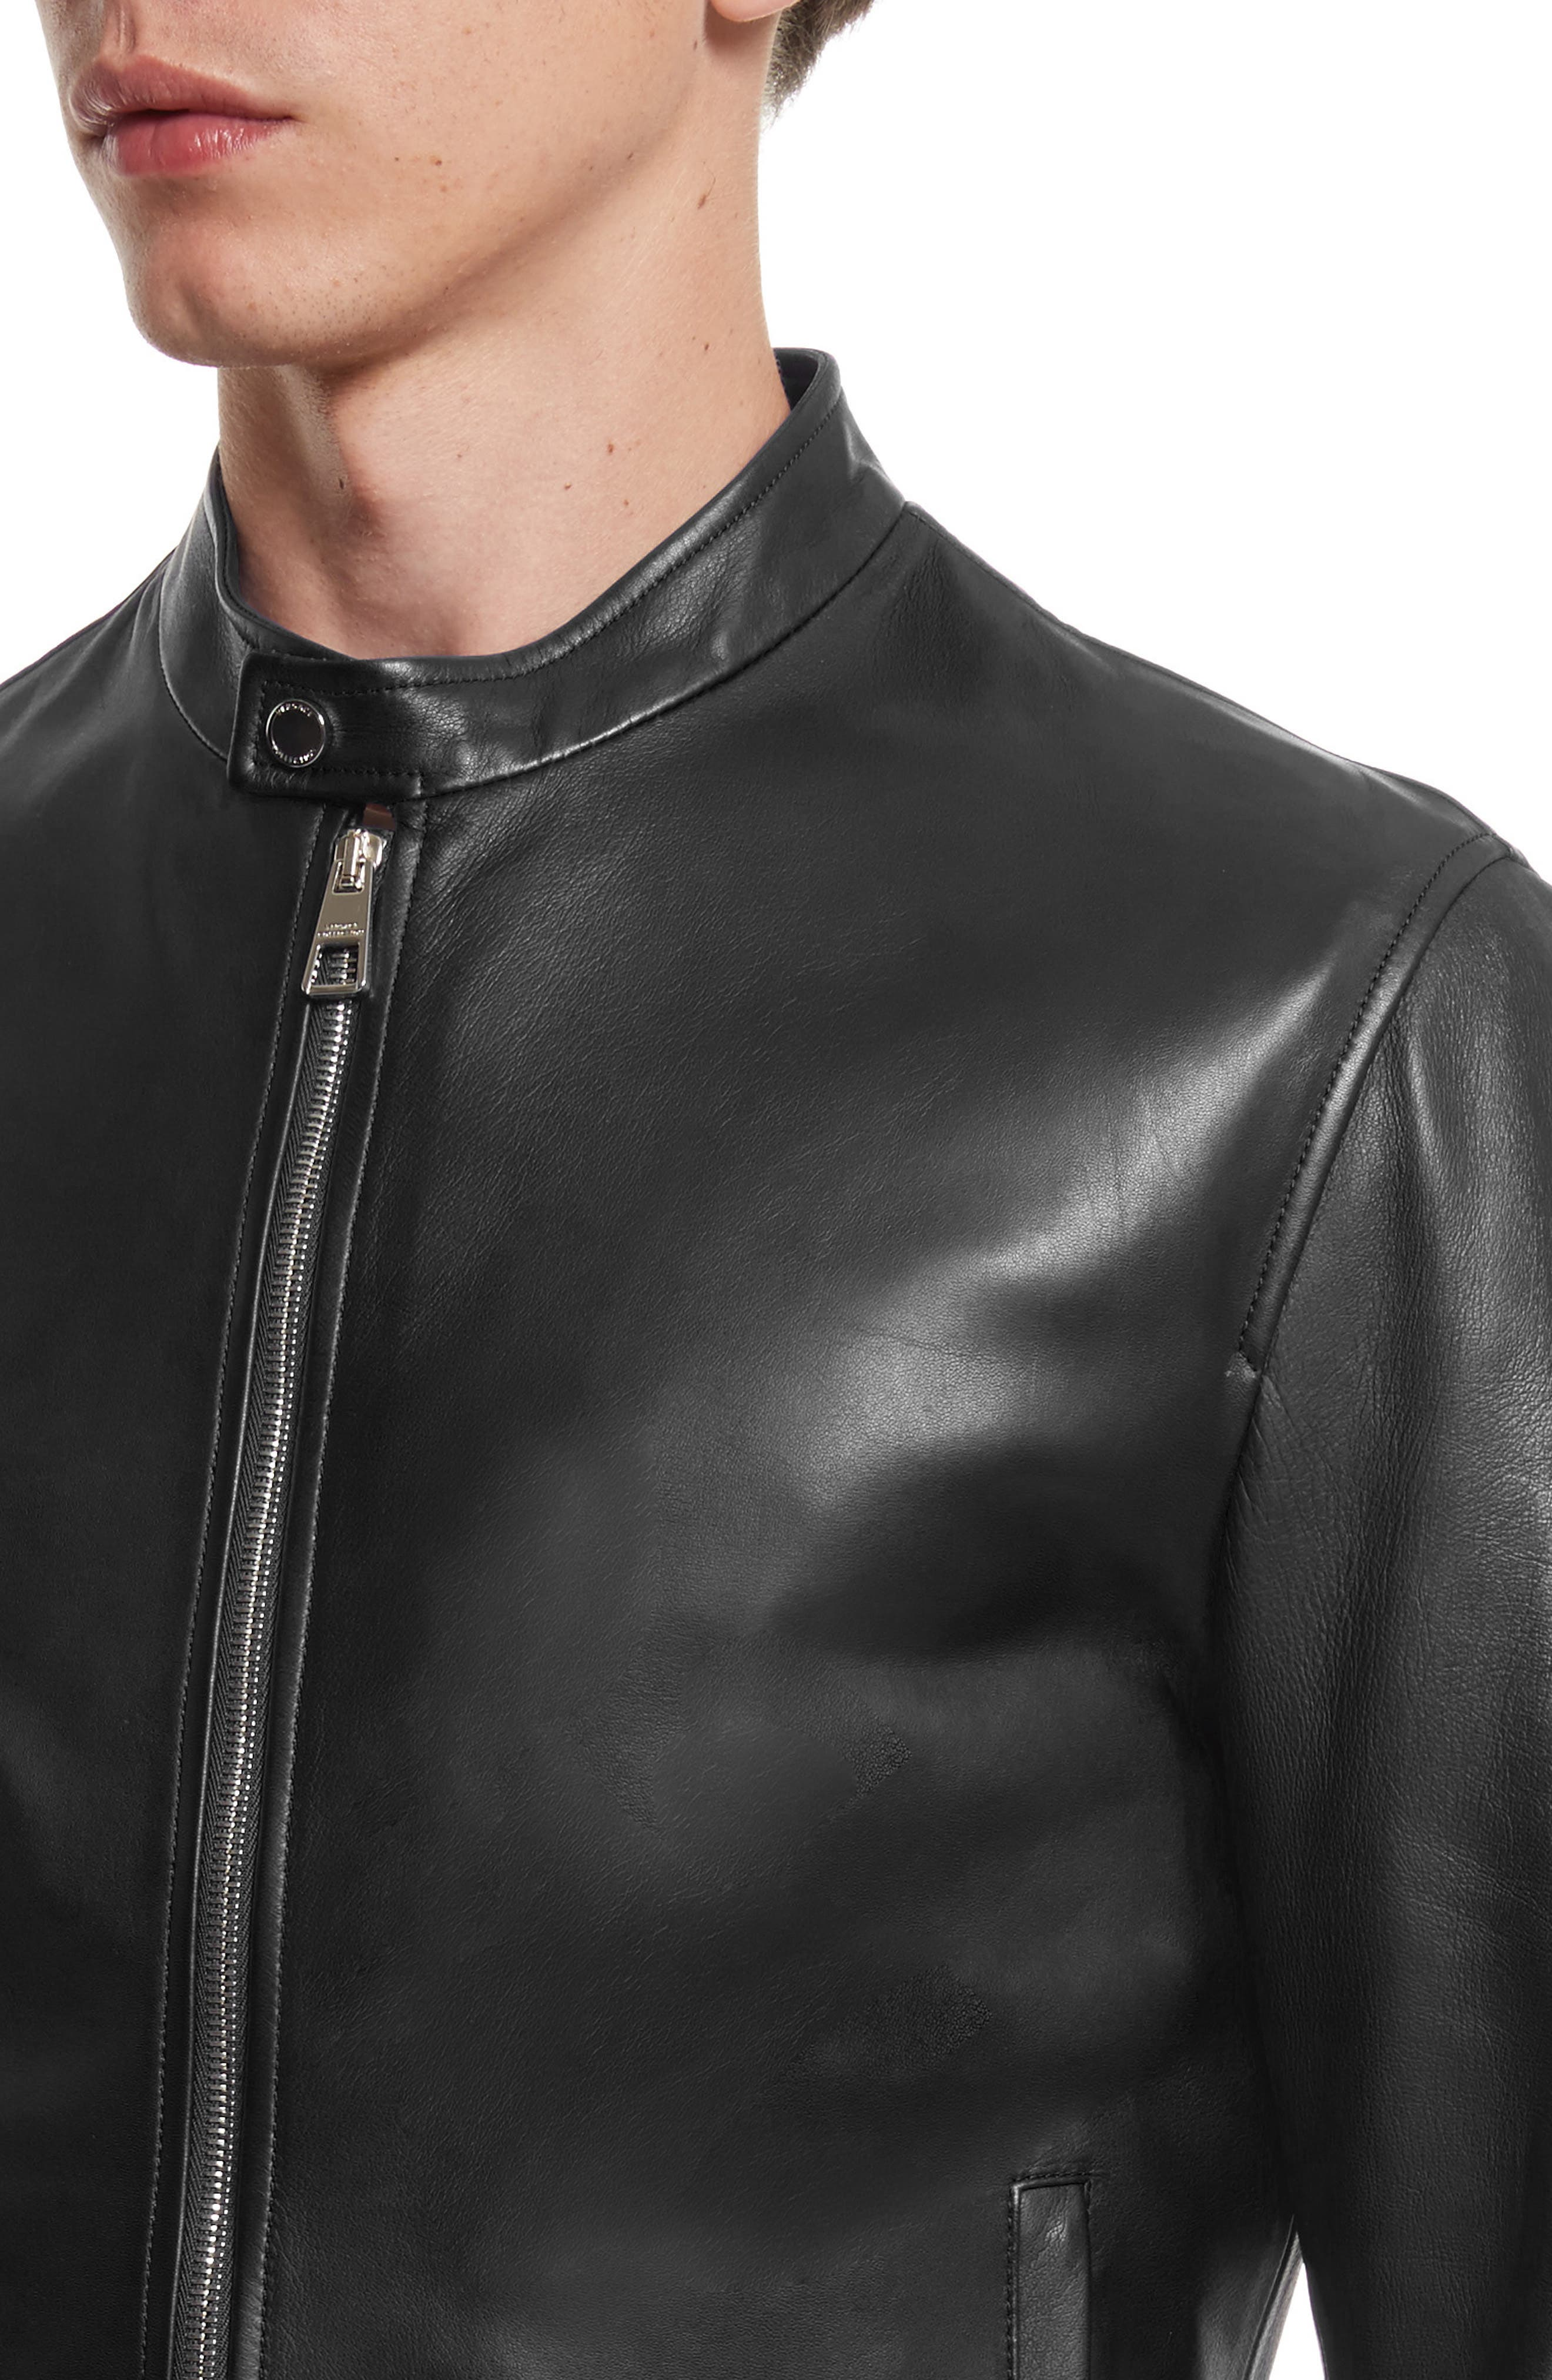 VERSACE COLLECTION, Café Racer Leather Jacket, Alternate thumbnail 4, color, 130